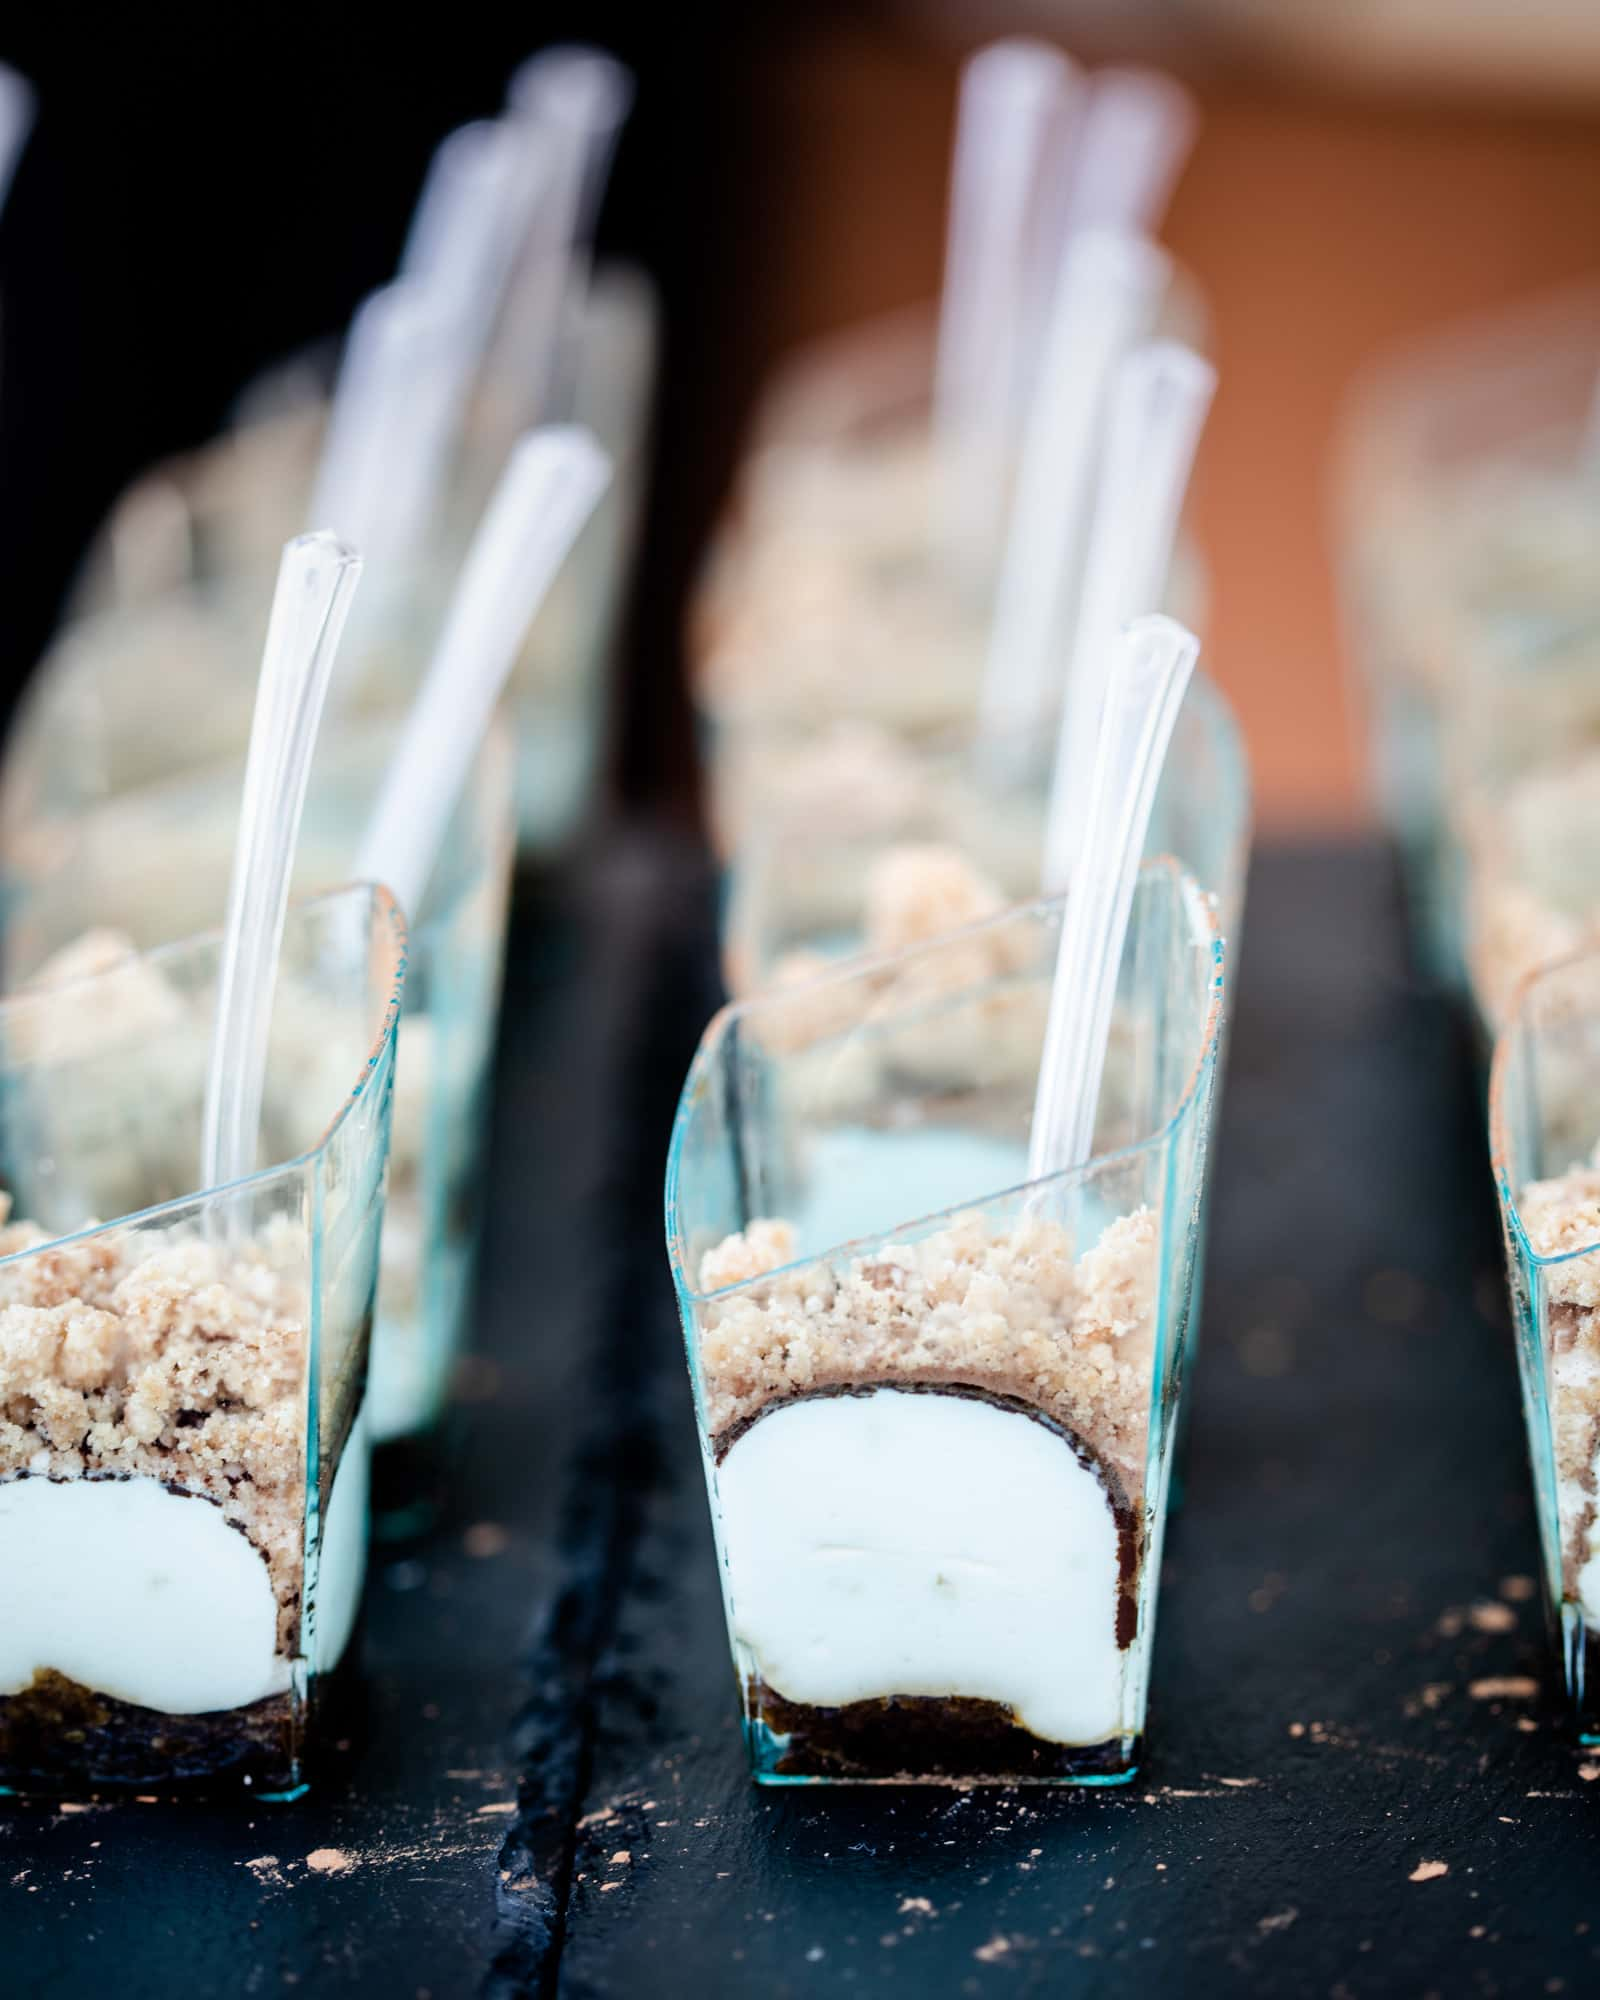 Mesquite Tiramisu in small blue sample cups